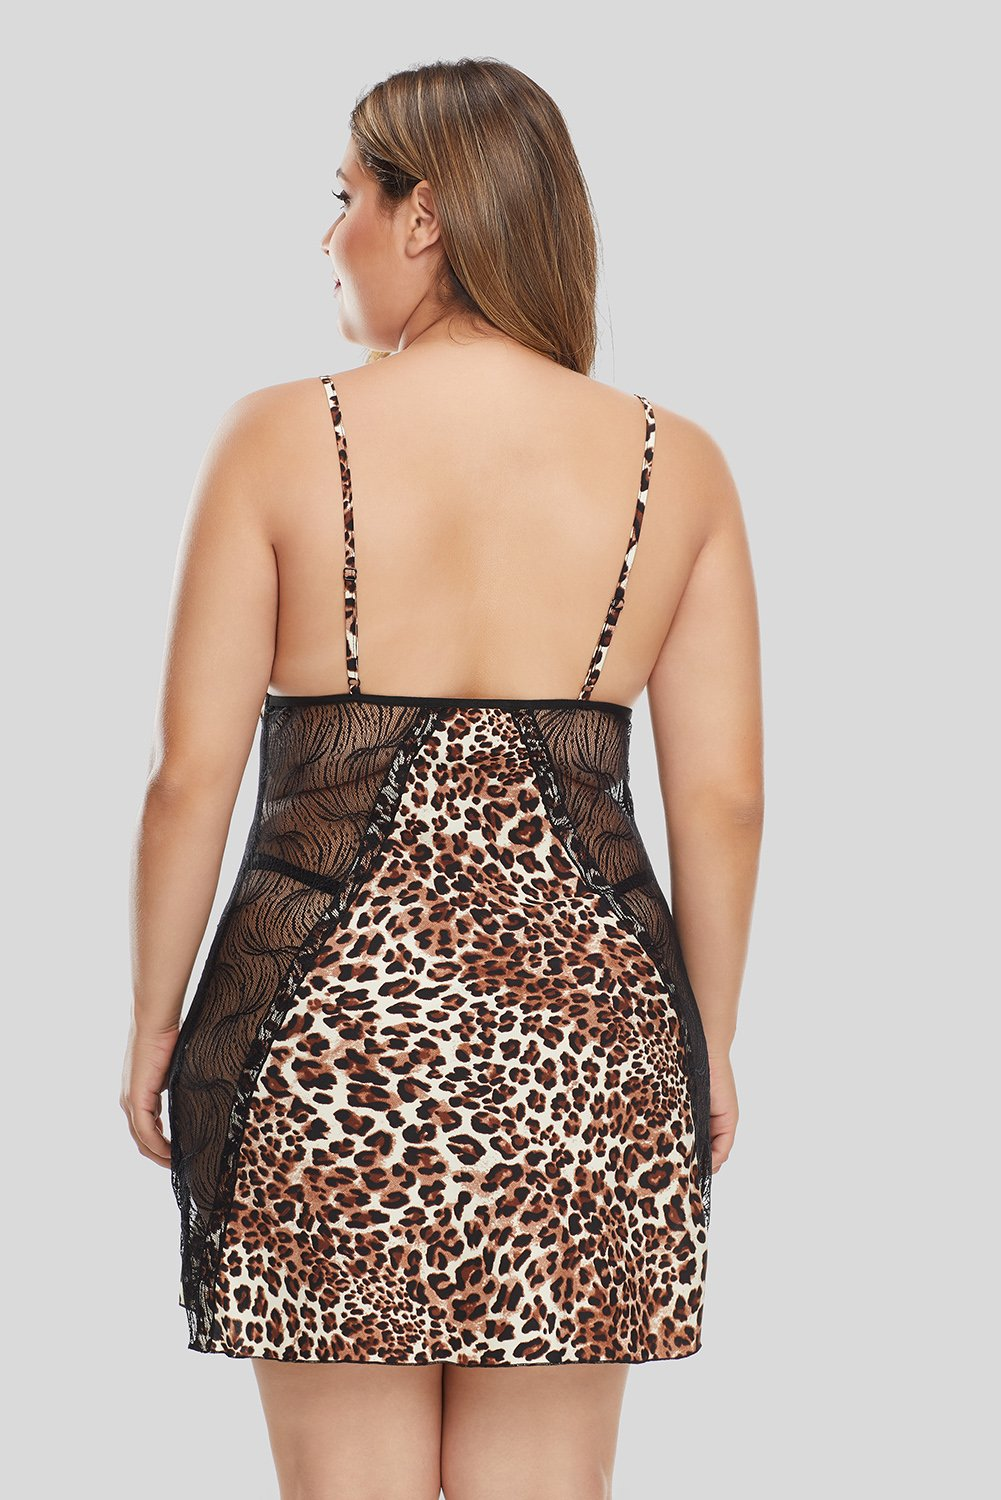 Cheetah Print Lace Hollow-out Plus Size Lingerie-Plus Size Clothing, Plus Size Lingerie-Azura Exchange